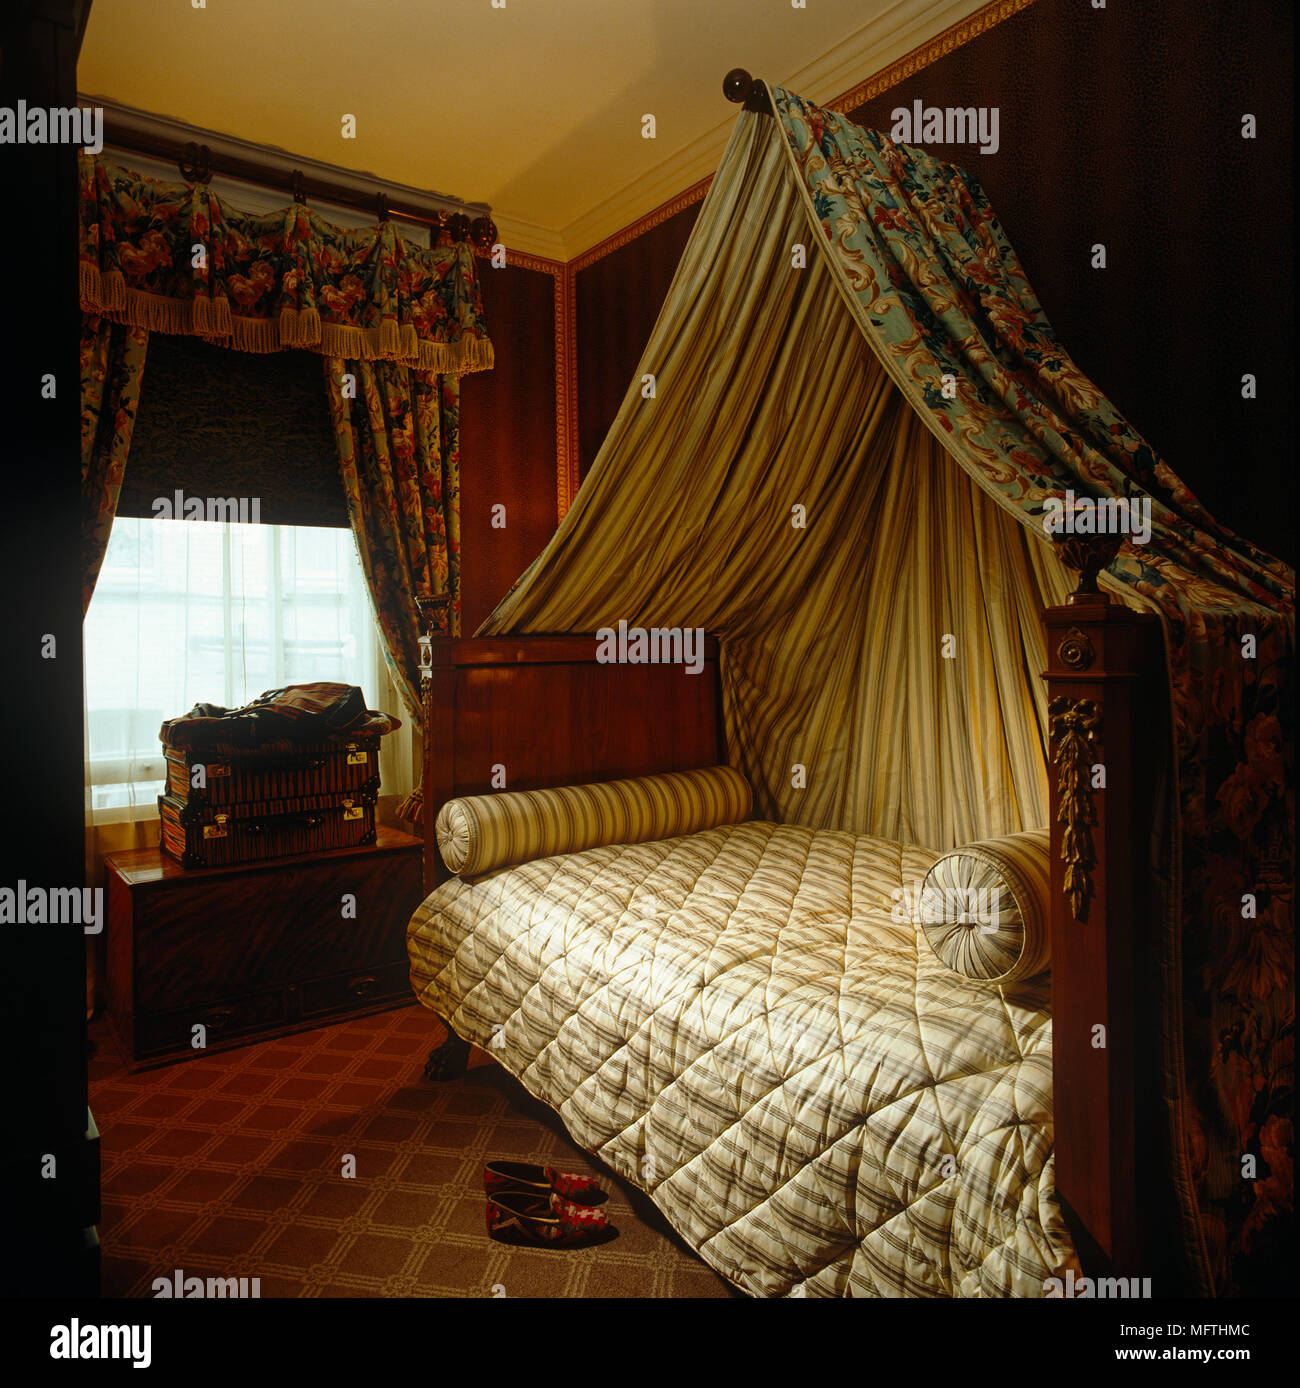 Fabric Canopy Above Single Bed With Dark Polished Wooden Bed Frame